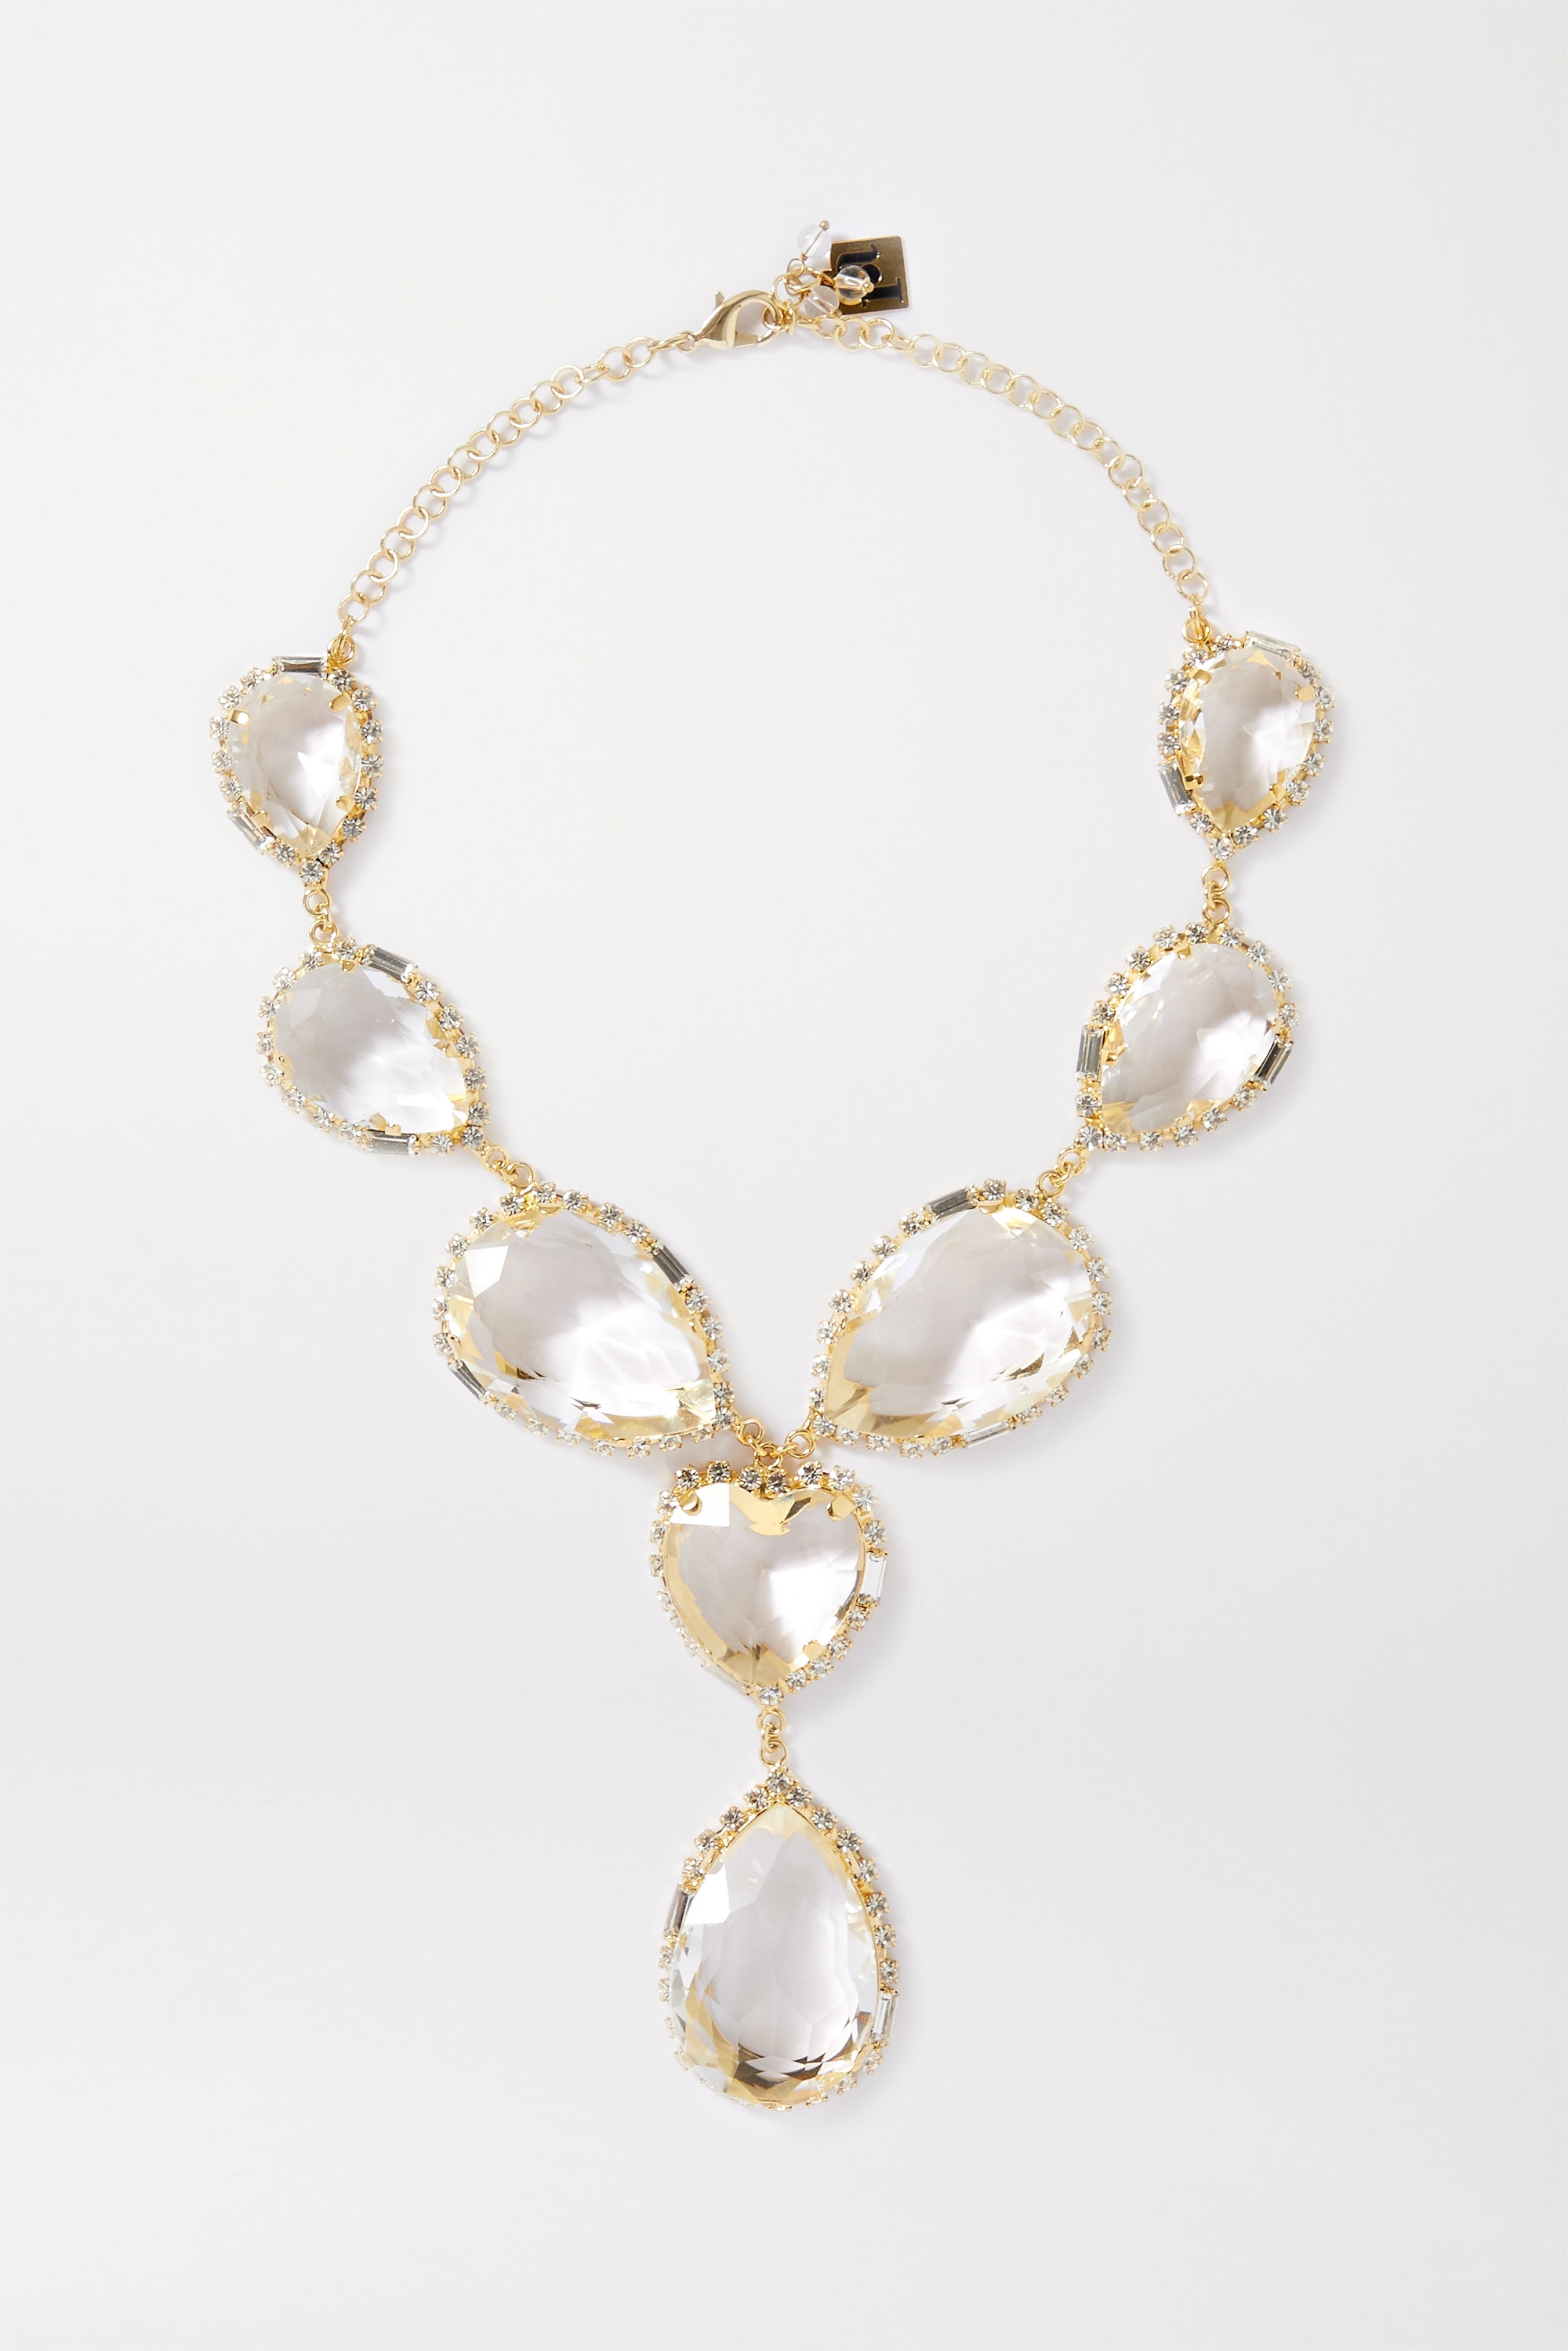 Rosantica Cuori gold-tone and crystal necklace